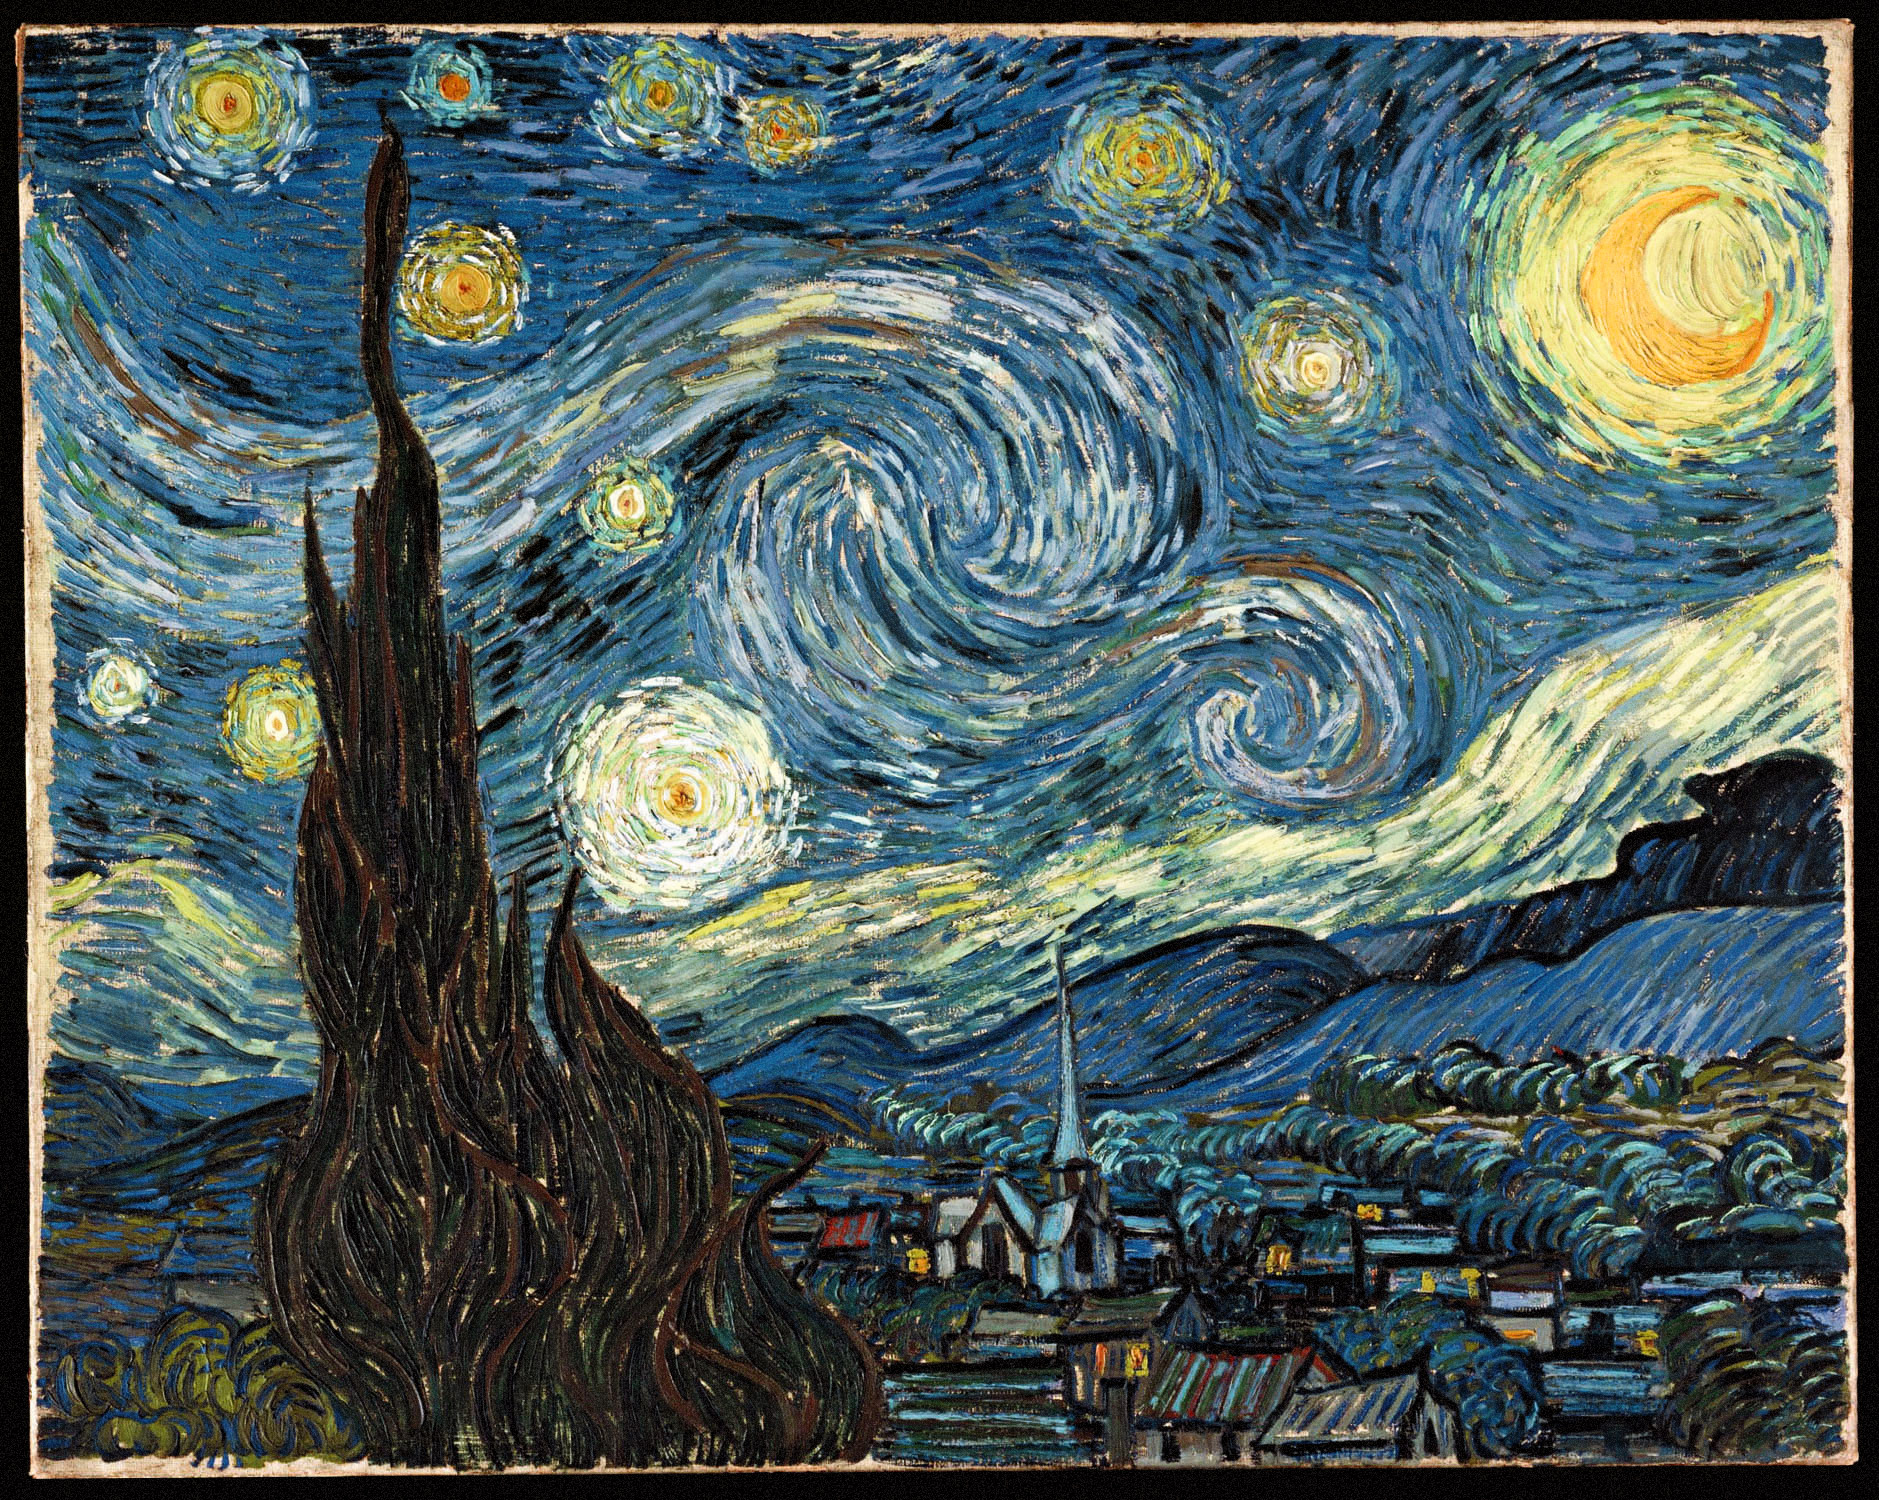 https://i2.wp.com/upload.wikimedia.org/wikipedia/commons/6/69/VanGogh-starry_night_edit.jpg